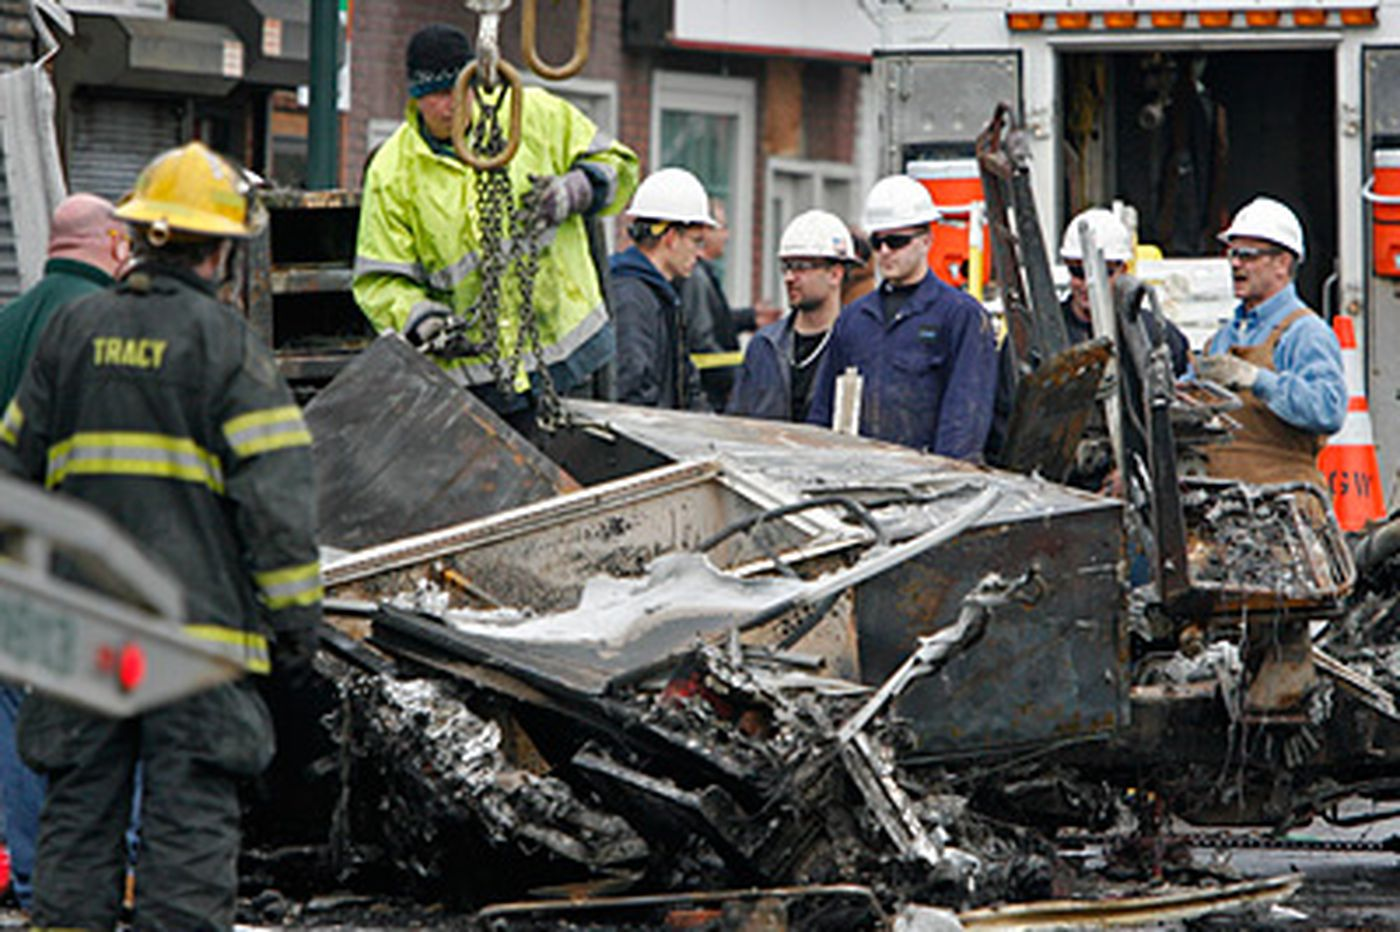 State faults PGW in deadly Tacony explosion